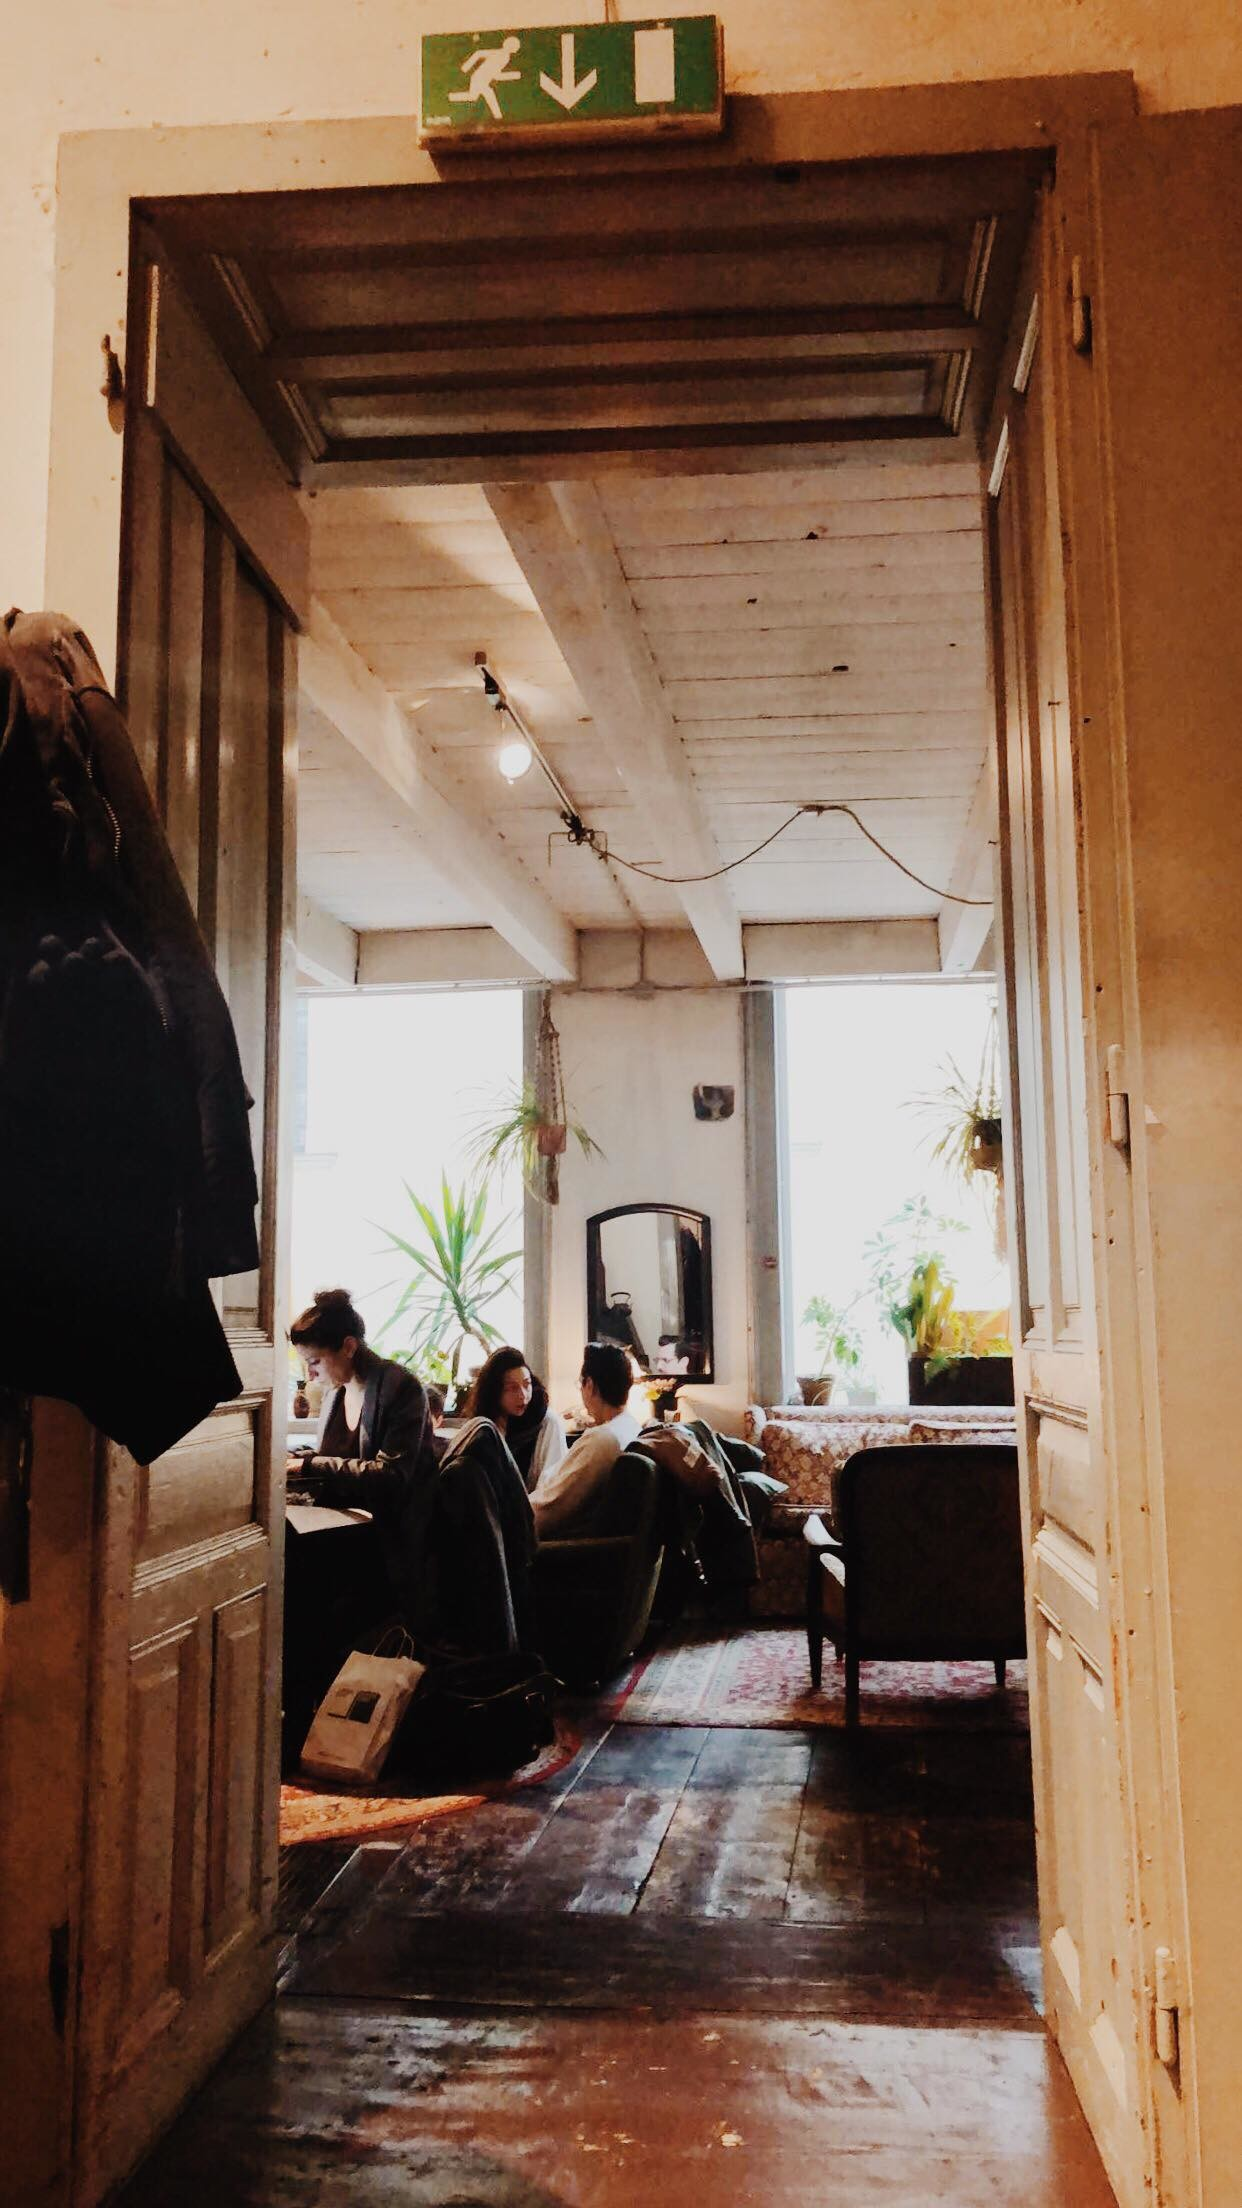 hip-vintage-the-cafe-inside-clothing-sto